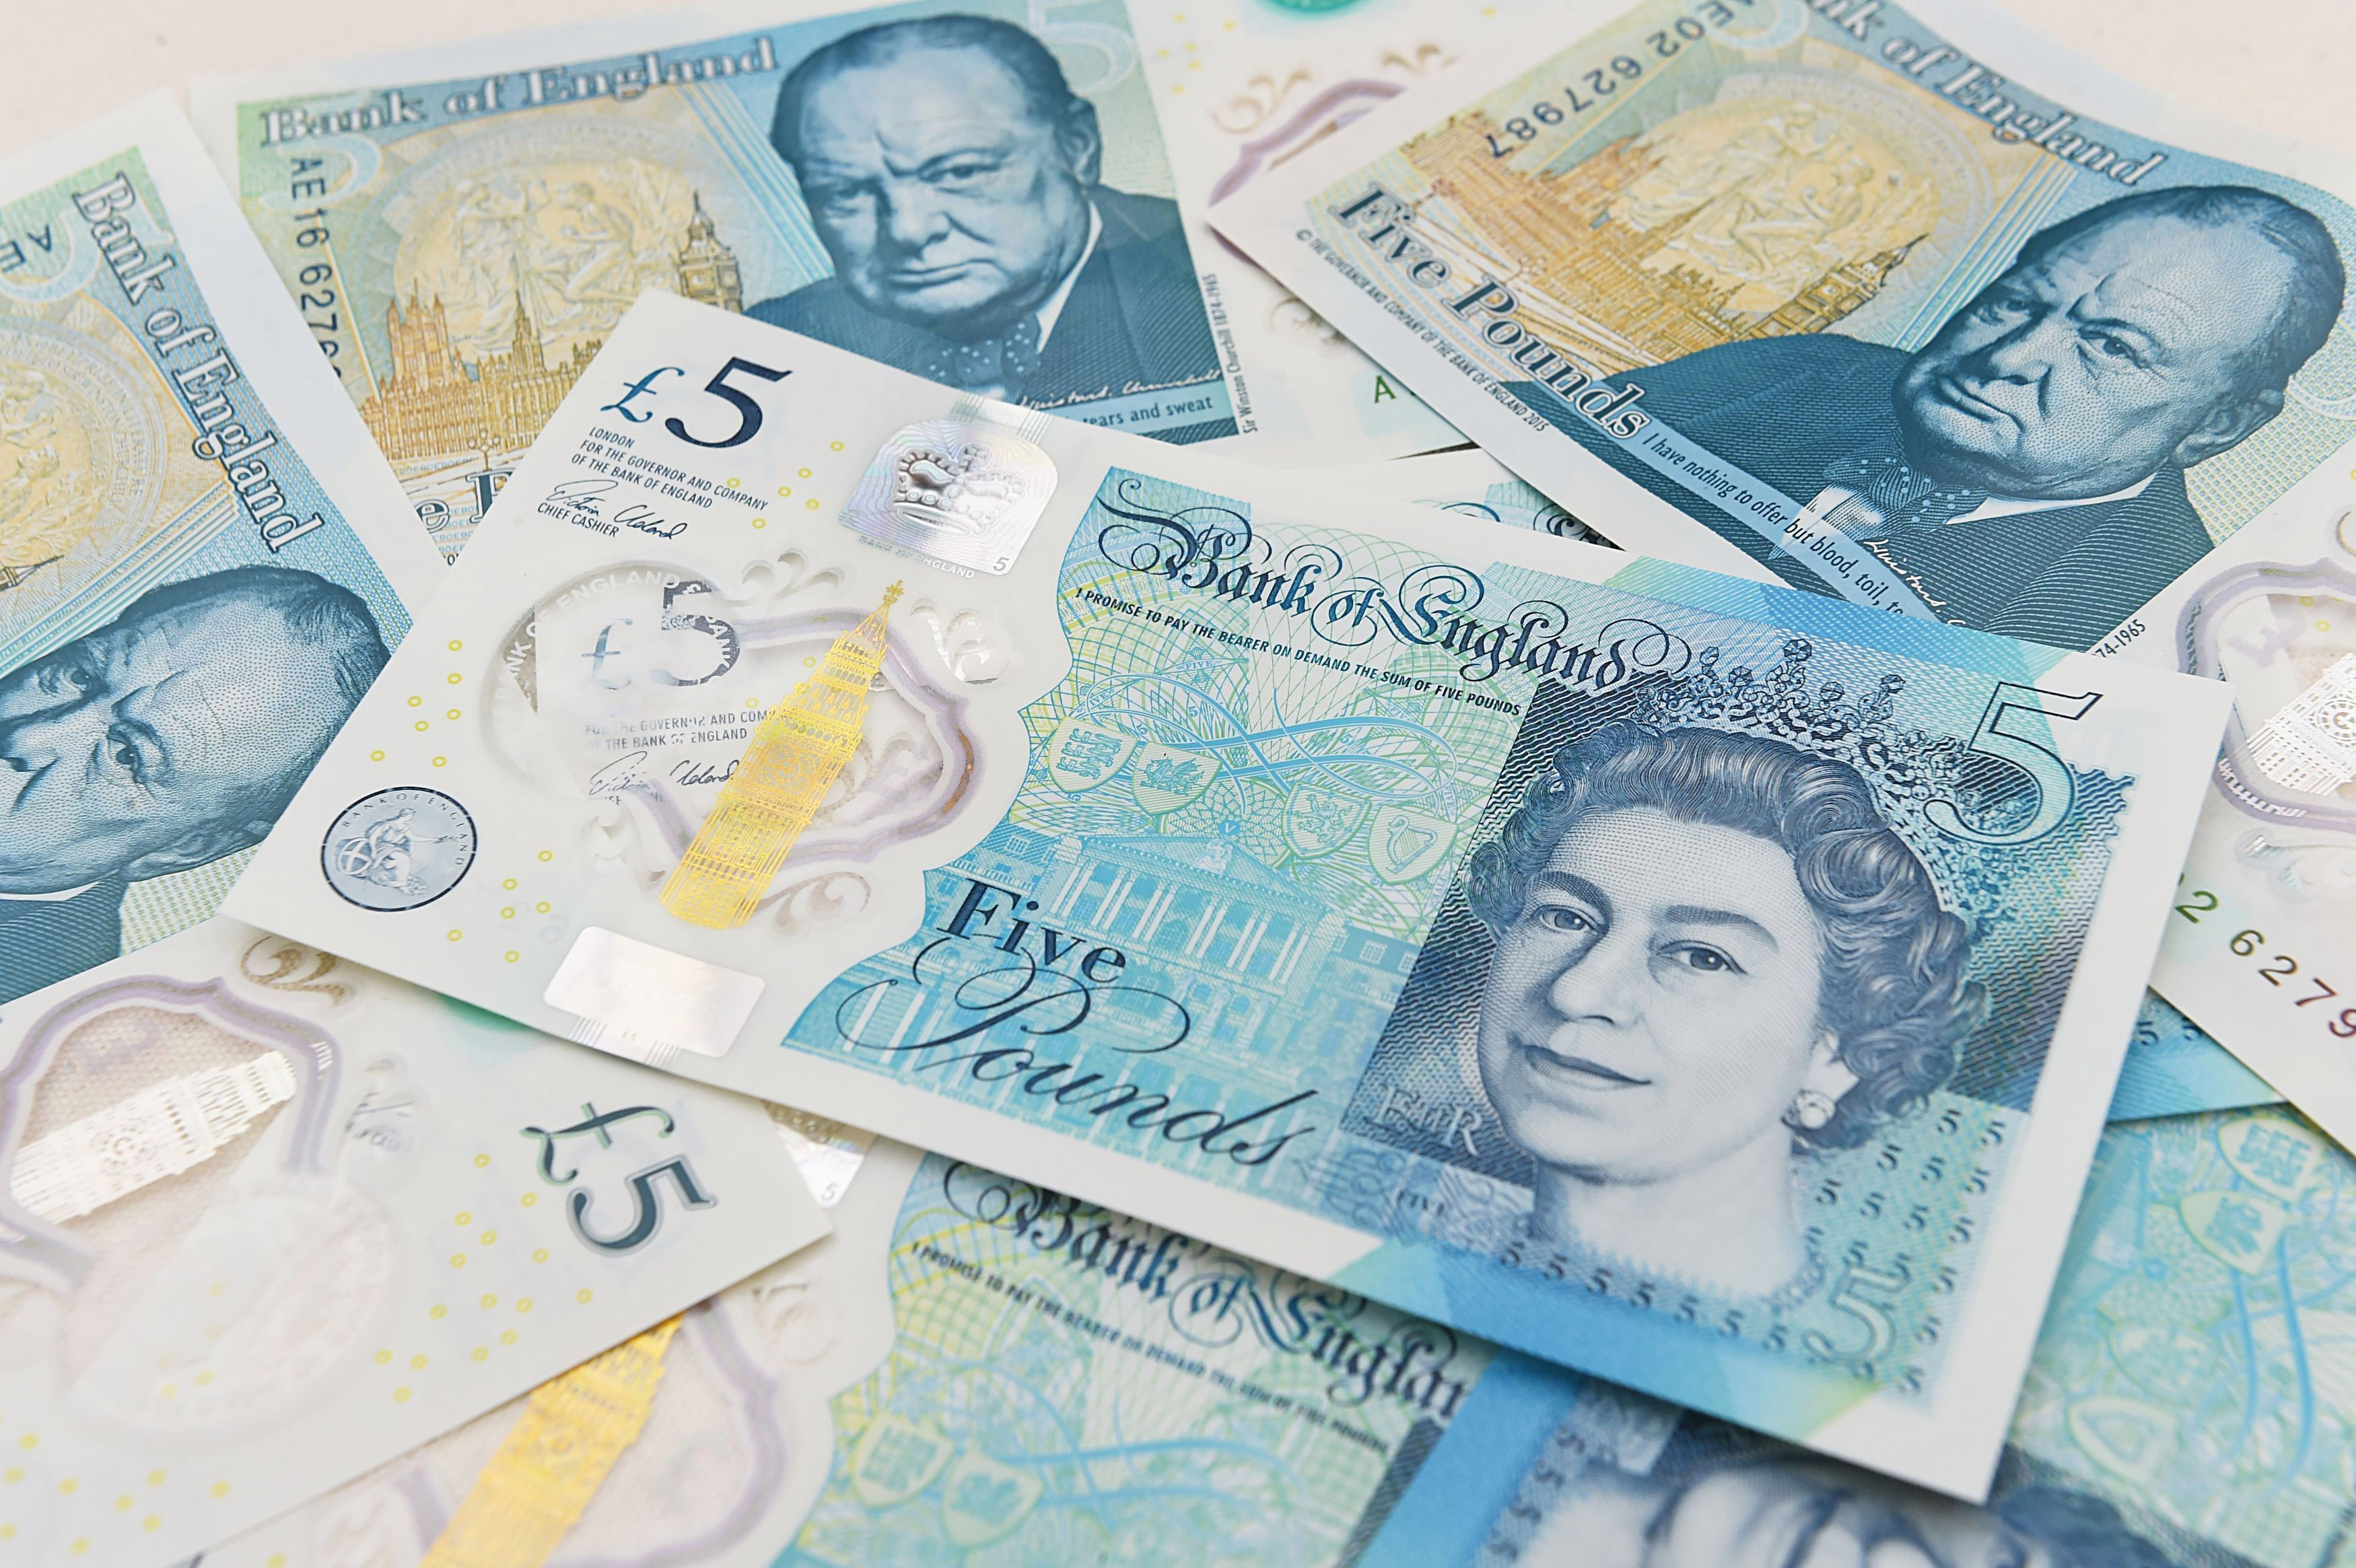 Shops have been concerned about a flood of fake fivers, but the Bank of England has insisted that they are real